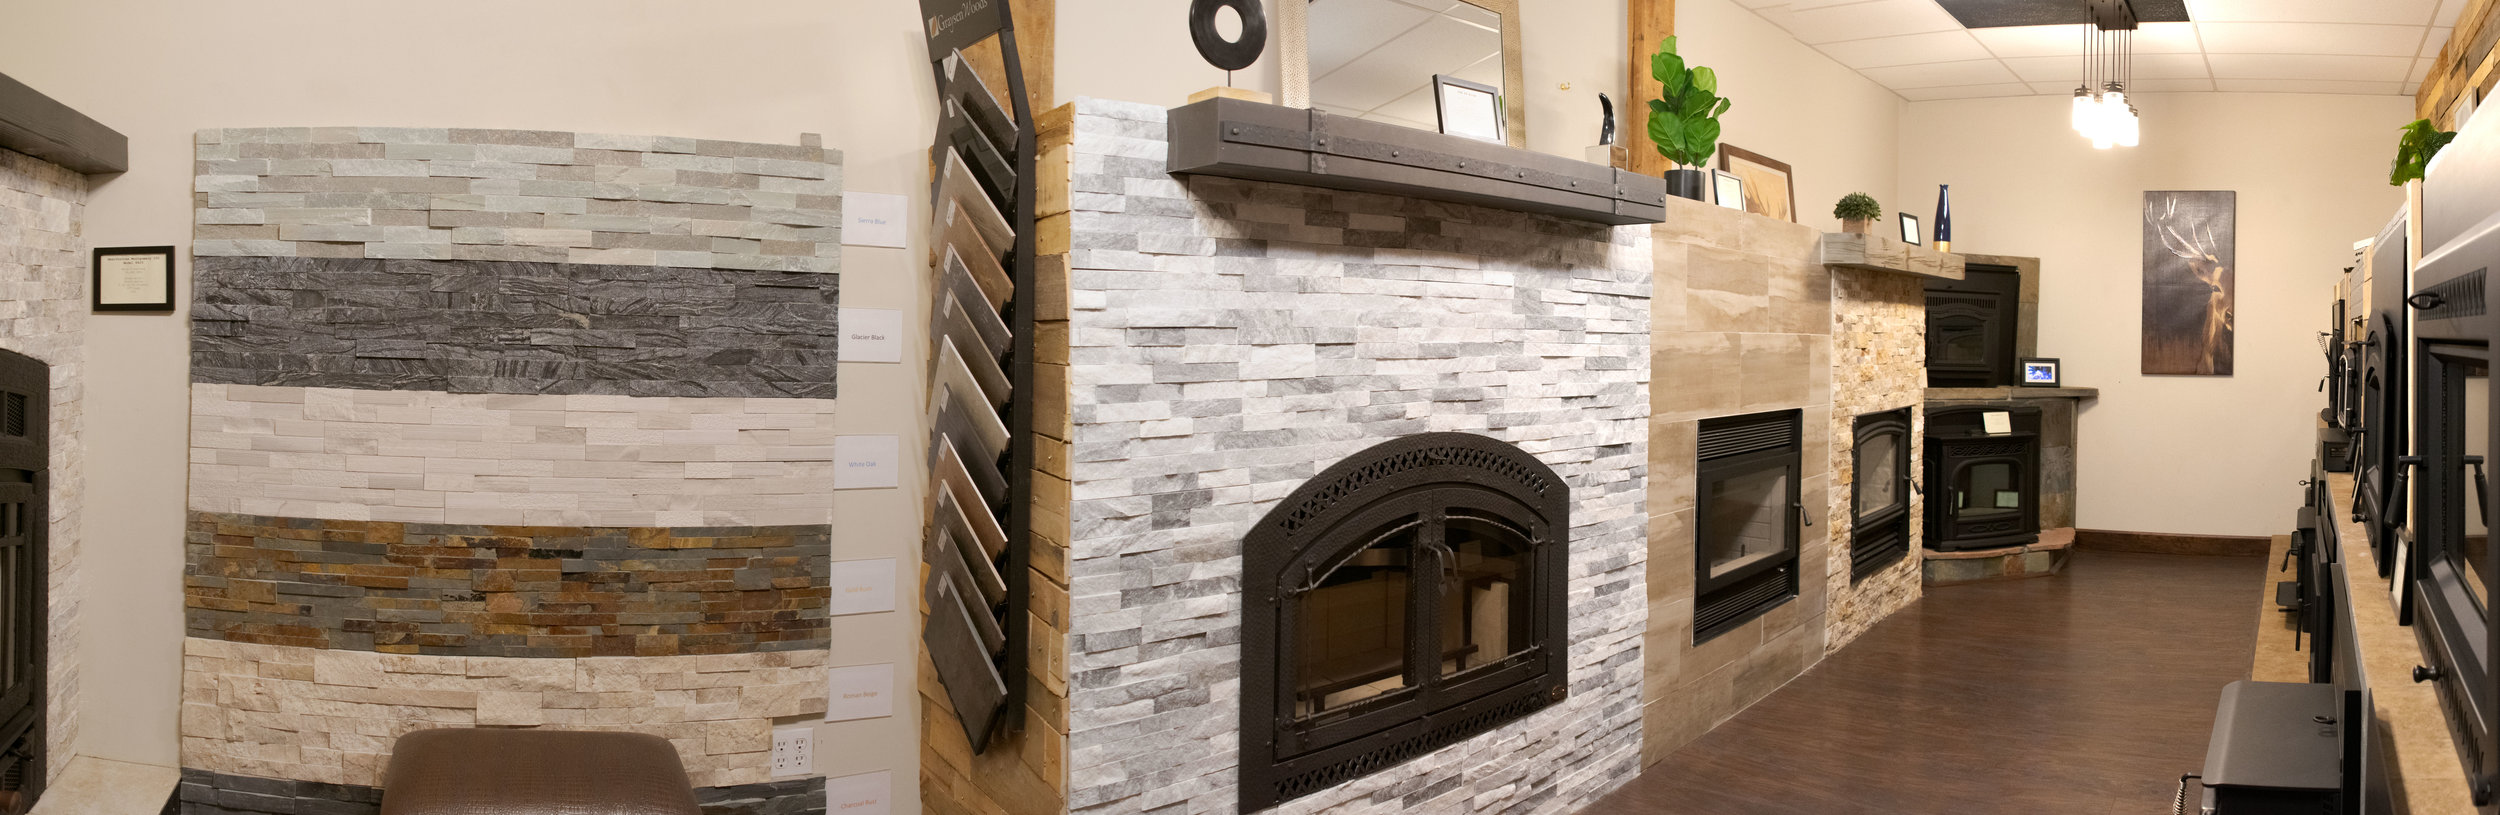 Wood burning fireplaces and inserts in our Evergreen Colorado showroom with tile and stonework done by our multi-talented technicians